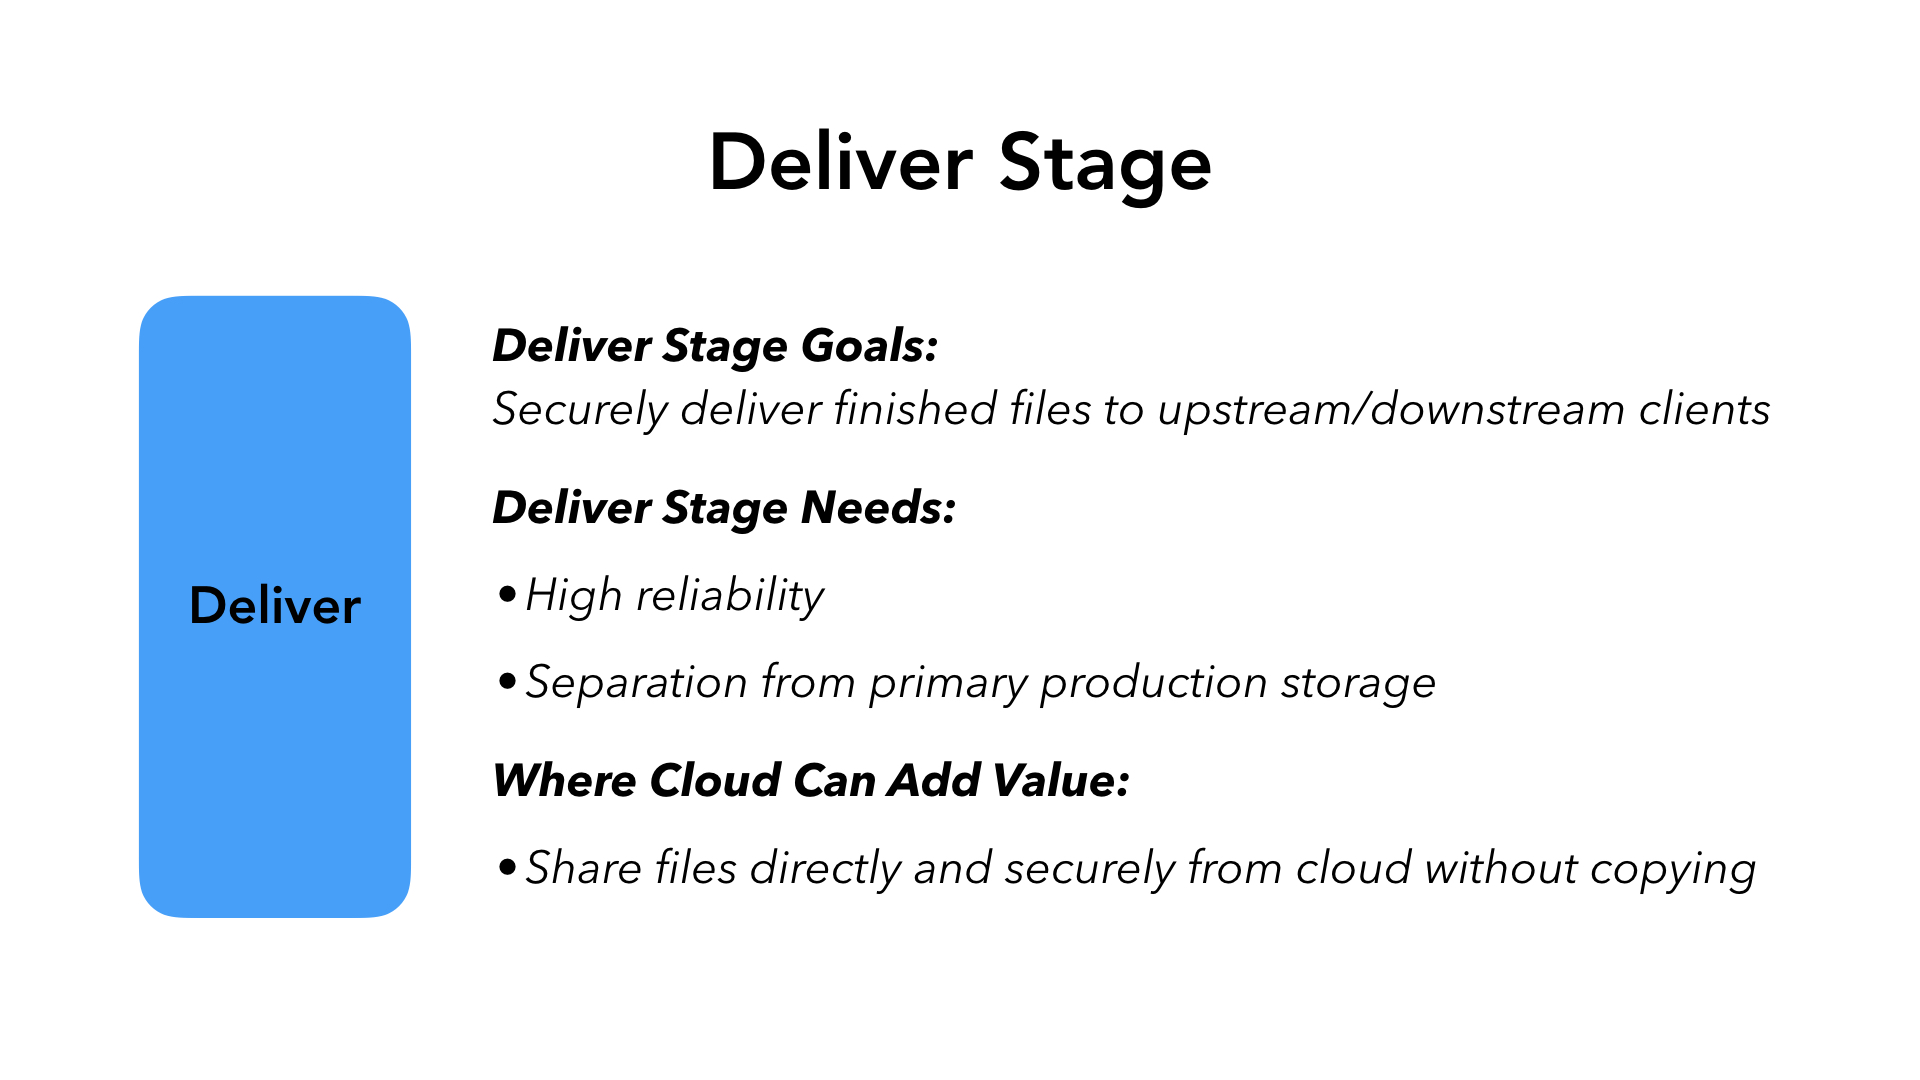 Deliver Stage - Deliver Stage Goals: Securely deliver finished files to upstream/downstream clients. Deliver Stage Needs: High reliability. Separation from primary production storage. Where Cloud Can Add Value: Share files directly and securely from cloud without copying.